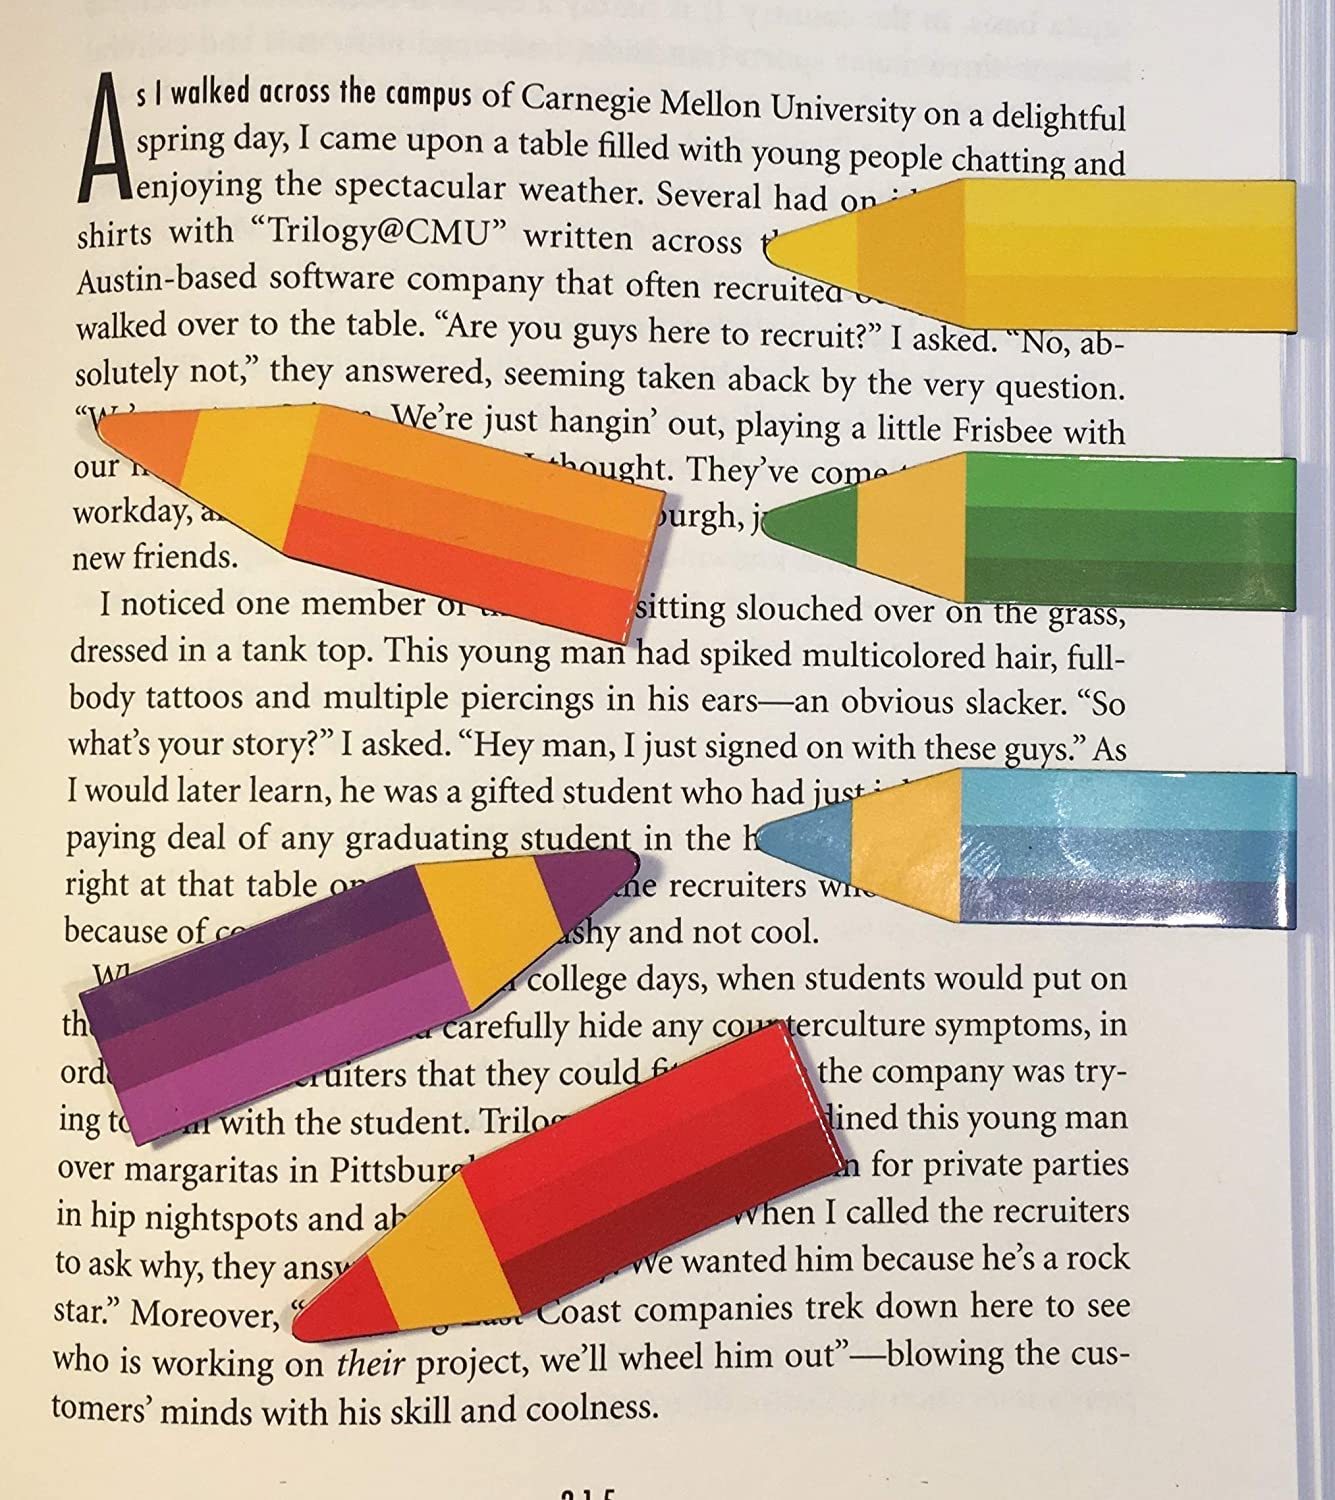 Magnetic Pencil Bookmarks Teens /& Kids! Get to The Point Assorted Colors - Box of 20 Teachers Librarians Women Pencil Pointer Book Marker Pack is Ideal for Men Slip-Over-The-Page